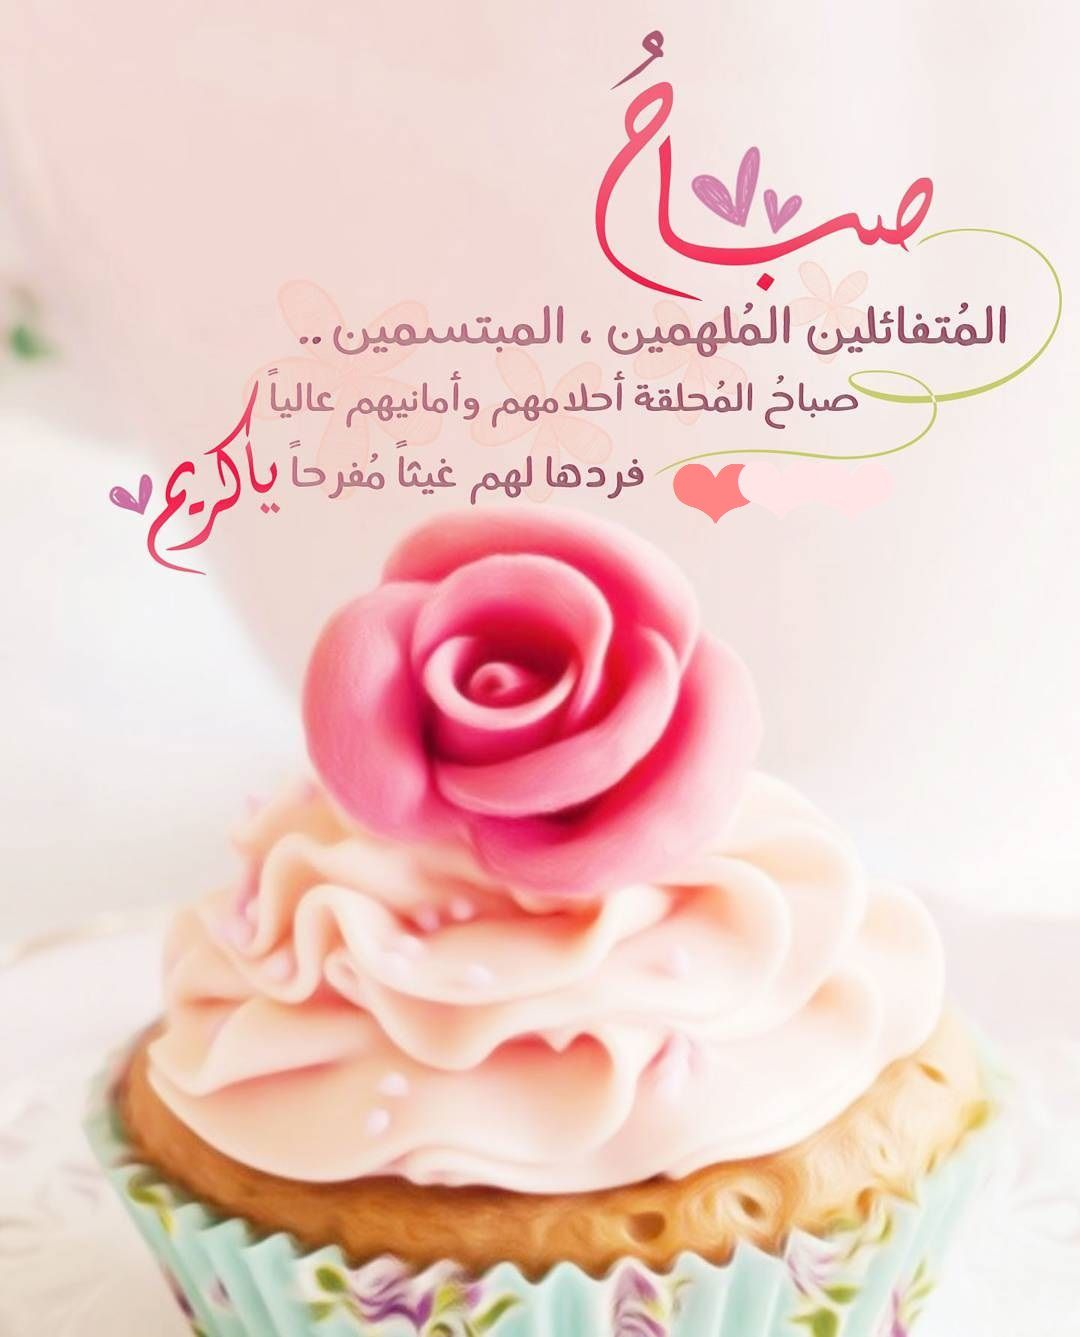 Pin By رغــــــد On بطـاقـات صبـاحيـة واسـلاميـة Good Morning Greetings Morning Greeting Lovely Quote